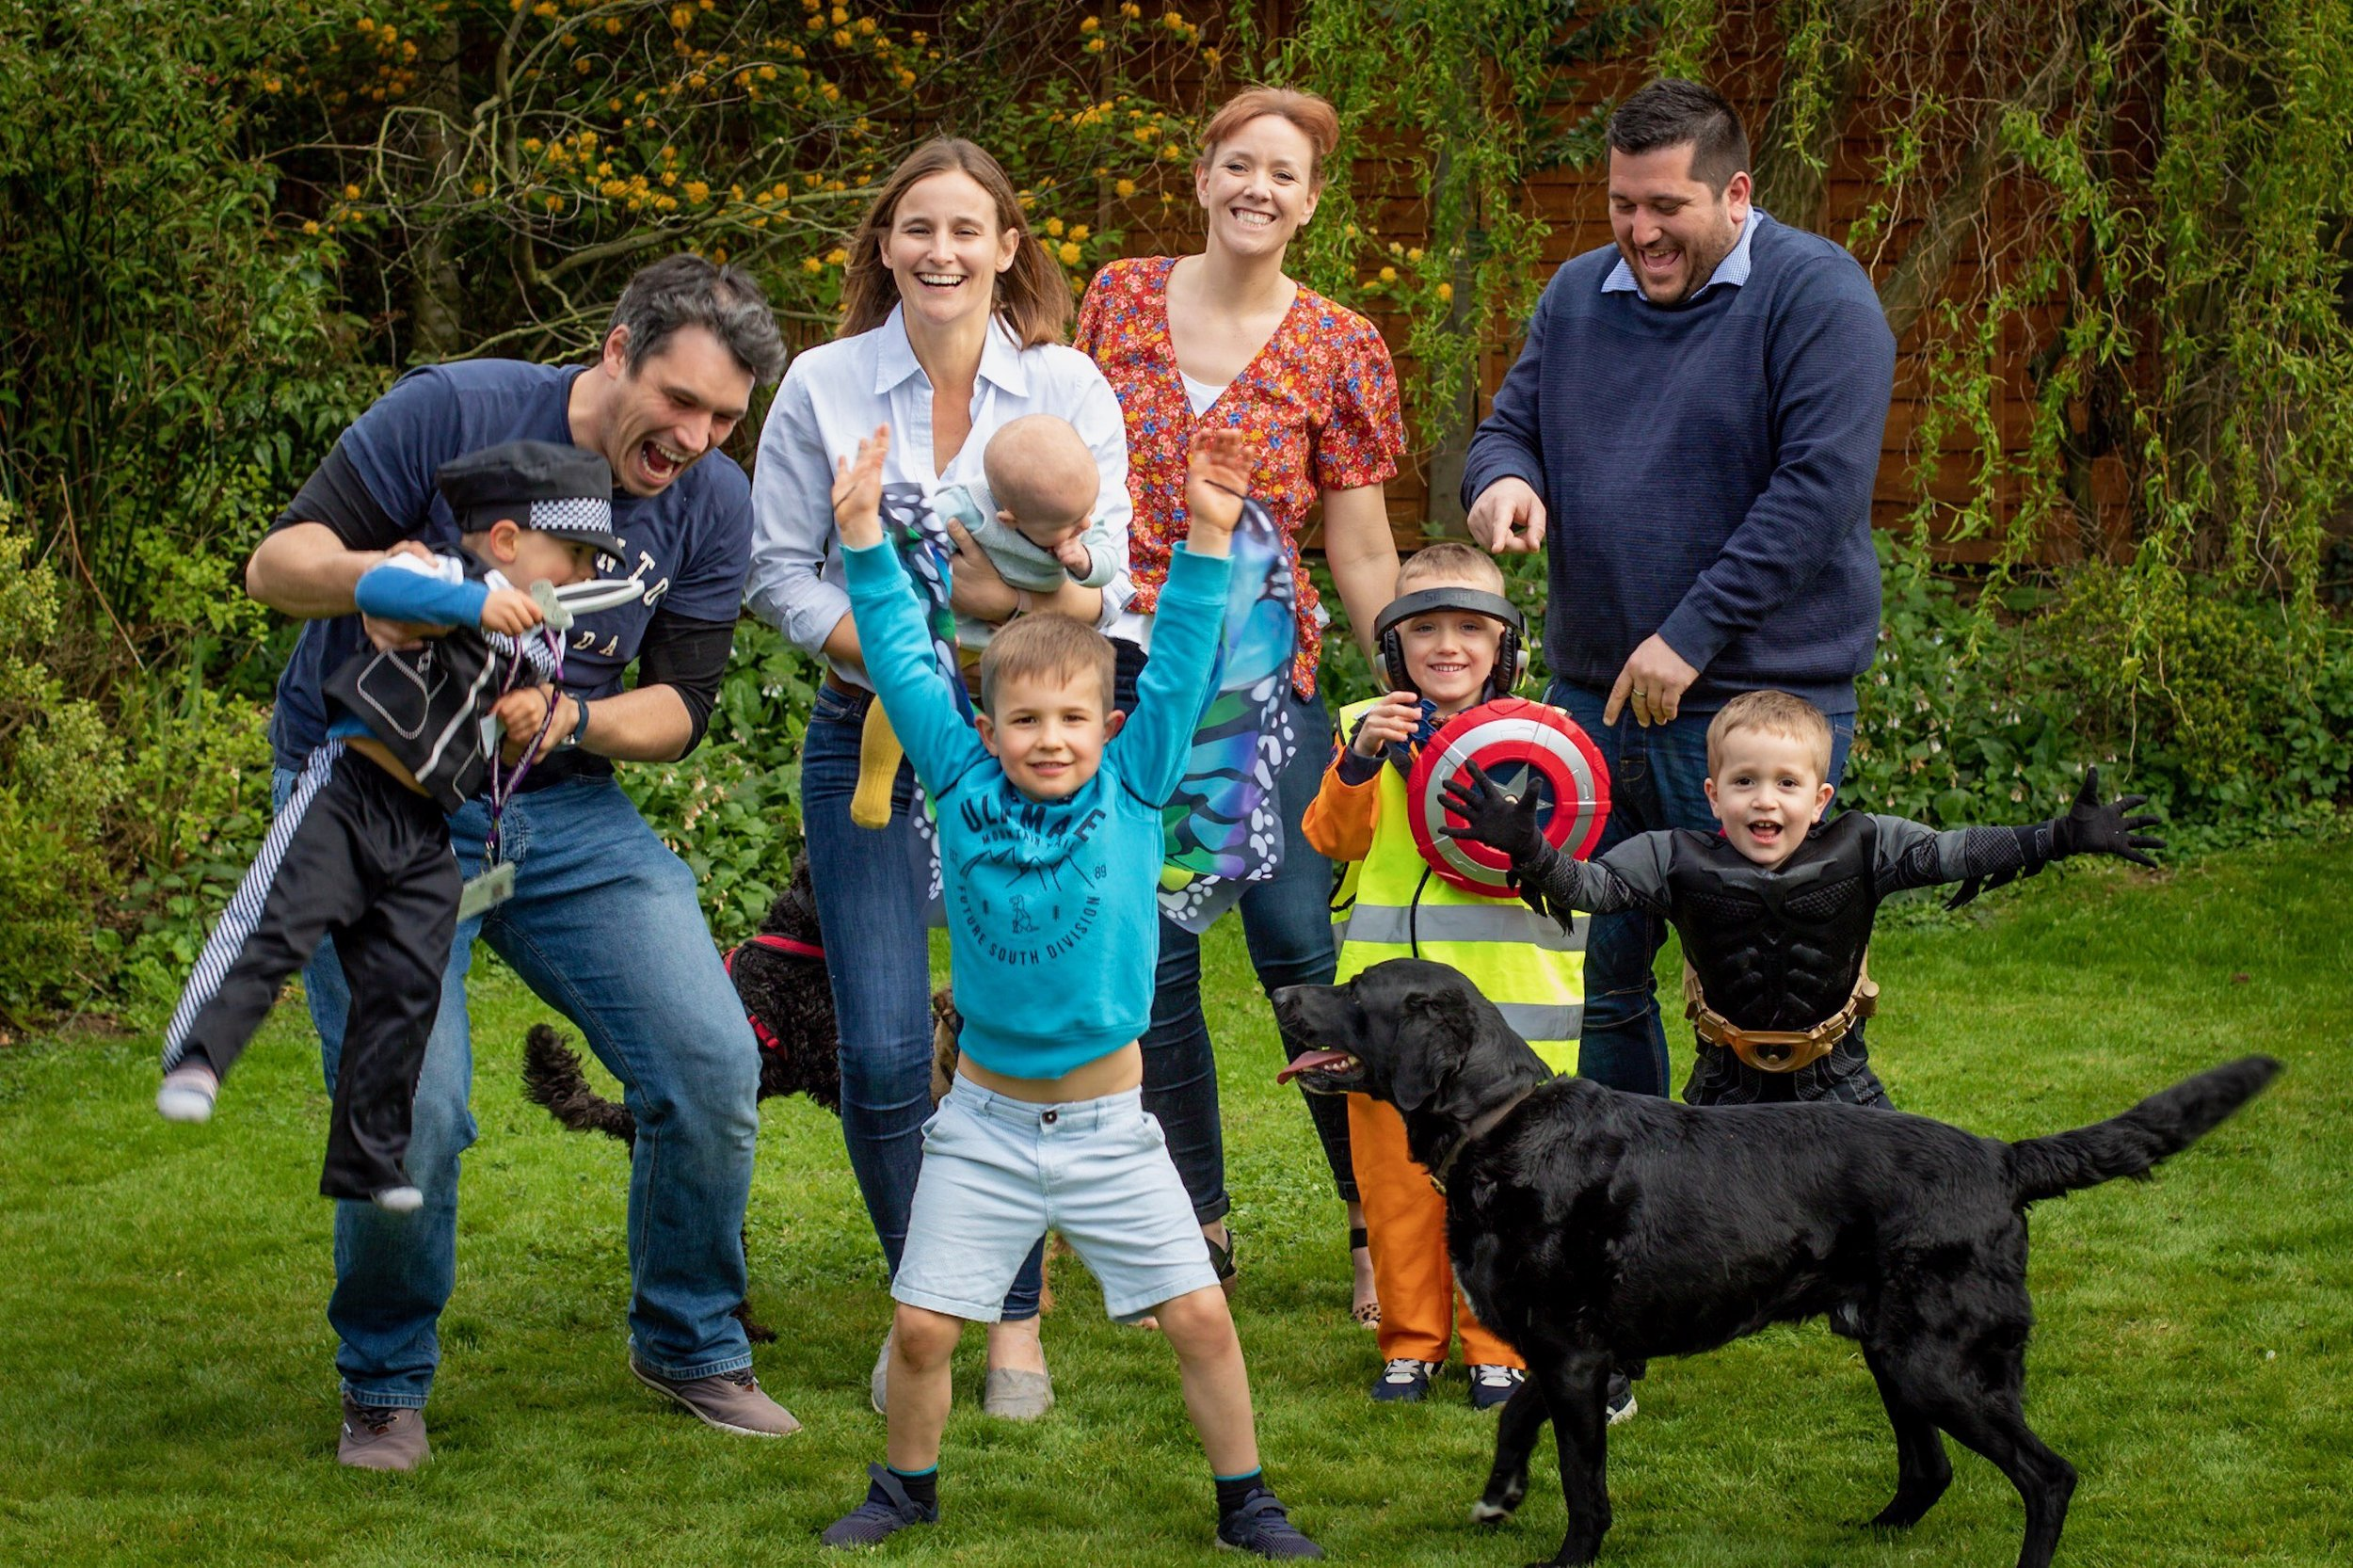 So this is us, madness and all… 👩🏻🧔🏻🧑🏼👦🏼👶🏻🐕👩🏻🧔🏻🧑🏼🧑🏼🐶